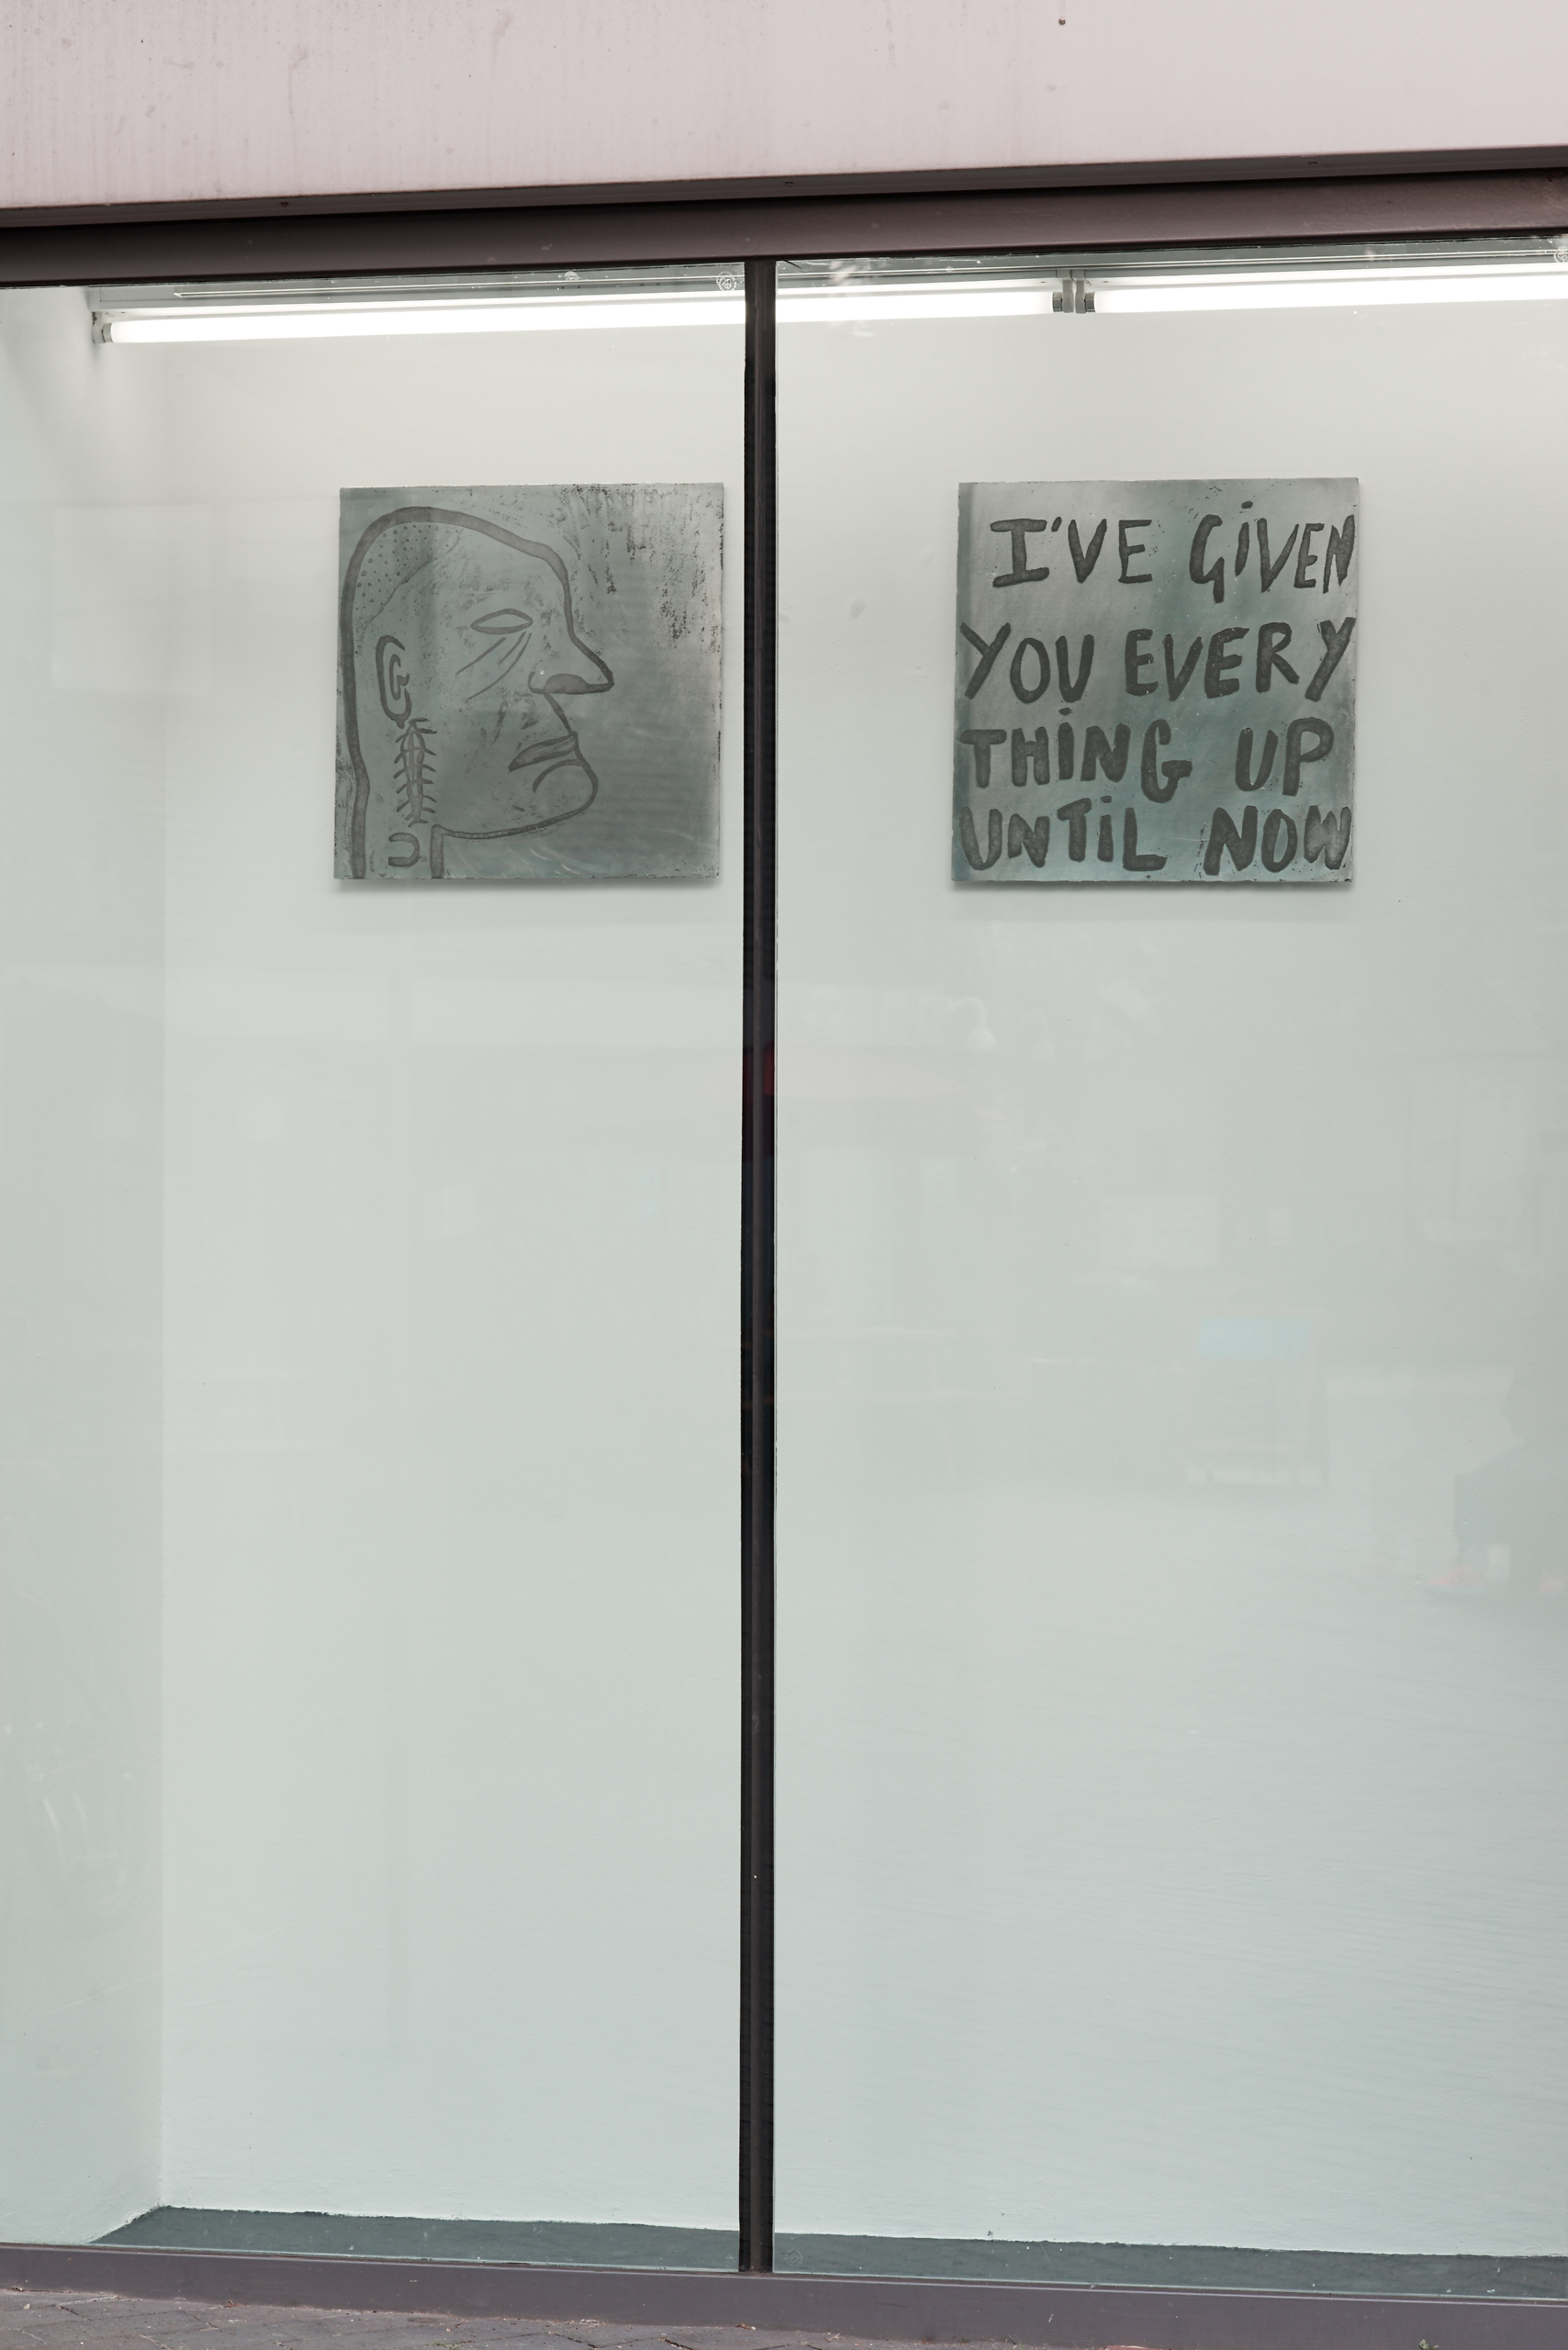 Georgia Lucas-Going, HIM, 2017. GREIF POWER PLAY, 2017. Metal etching. VITRINE London. Photographer : Jonathan Bassett.